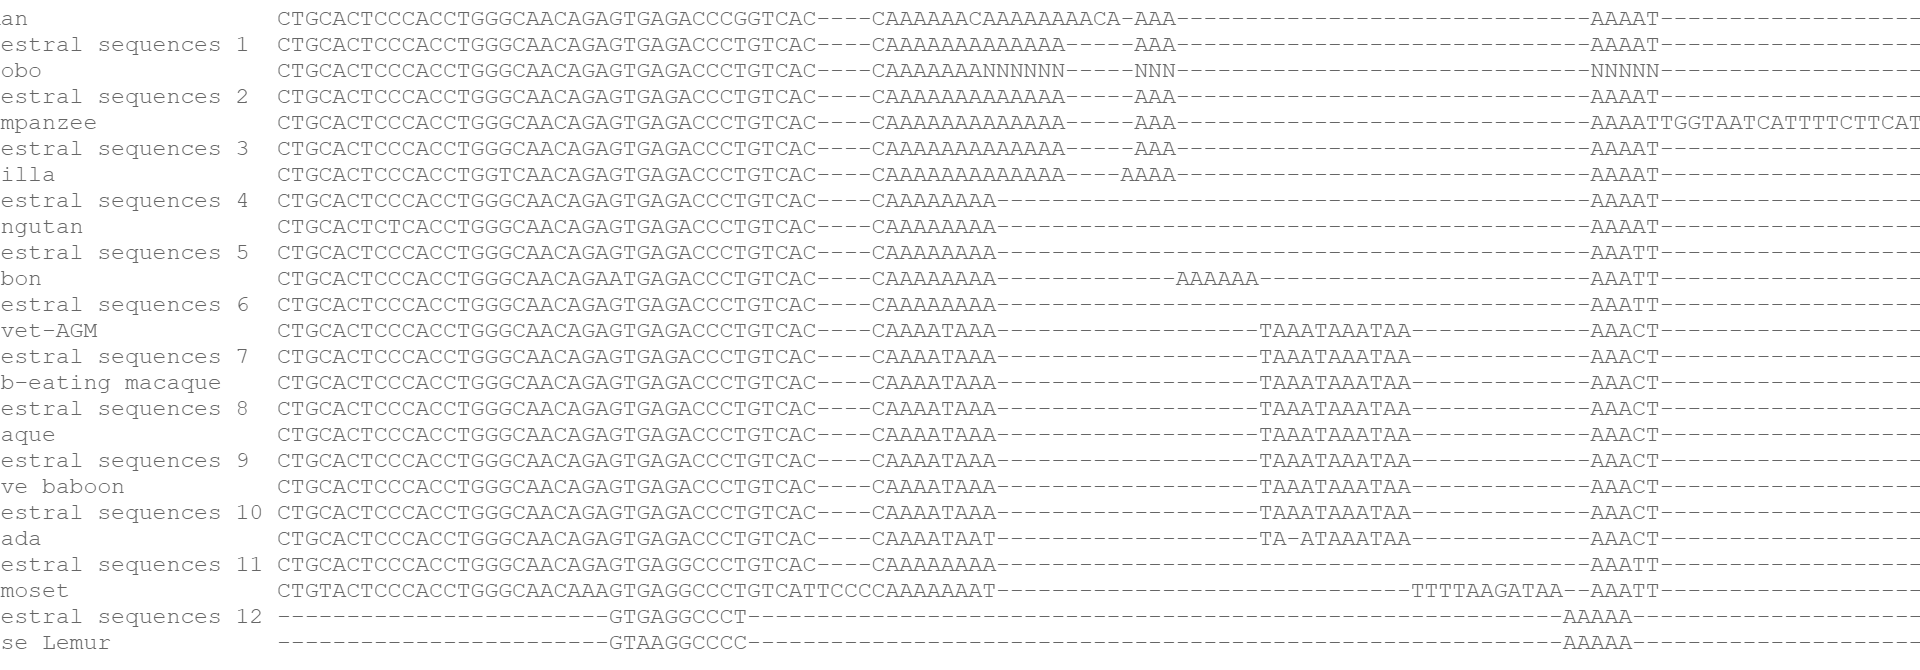 ENSEMBL-GENOME_GENE_ANALYSIS.png